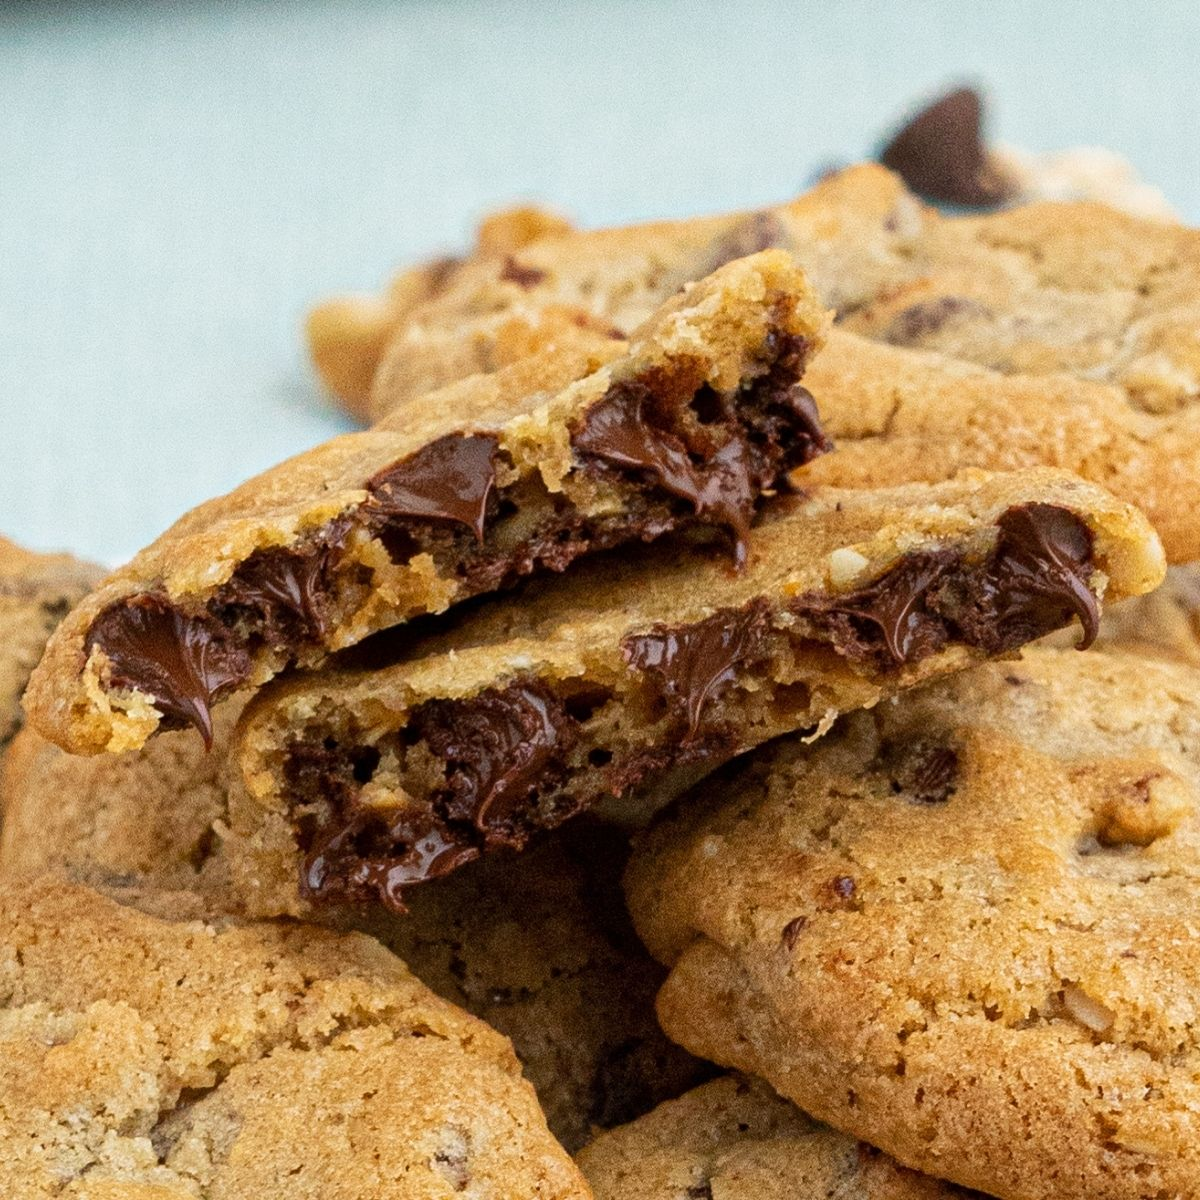 Close up photo of chocolate chip cookies with melting chocolate dripping out of cookie.